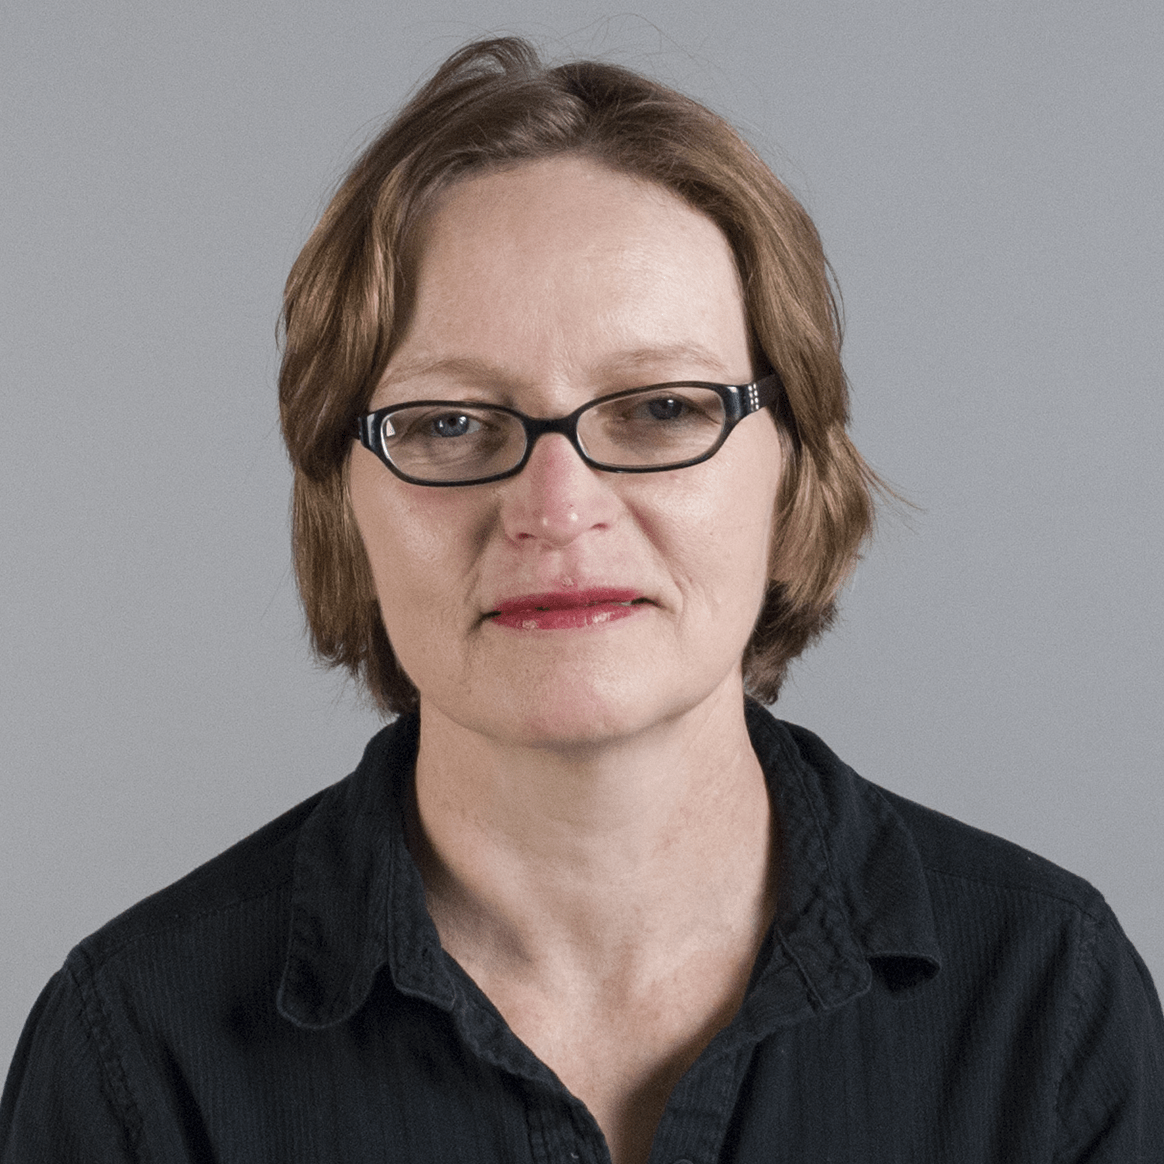 Portrait of Tenured Penn State Department of Architecture Associate Professor Christine Gorby